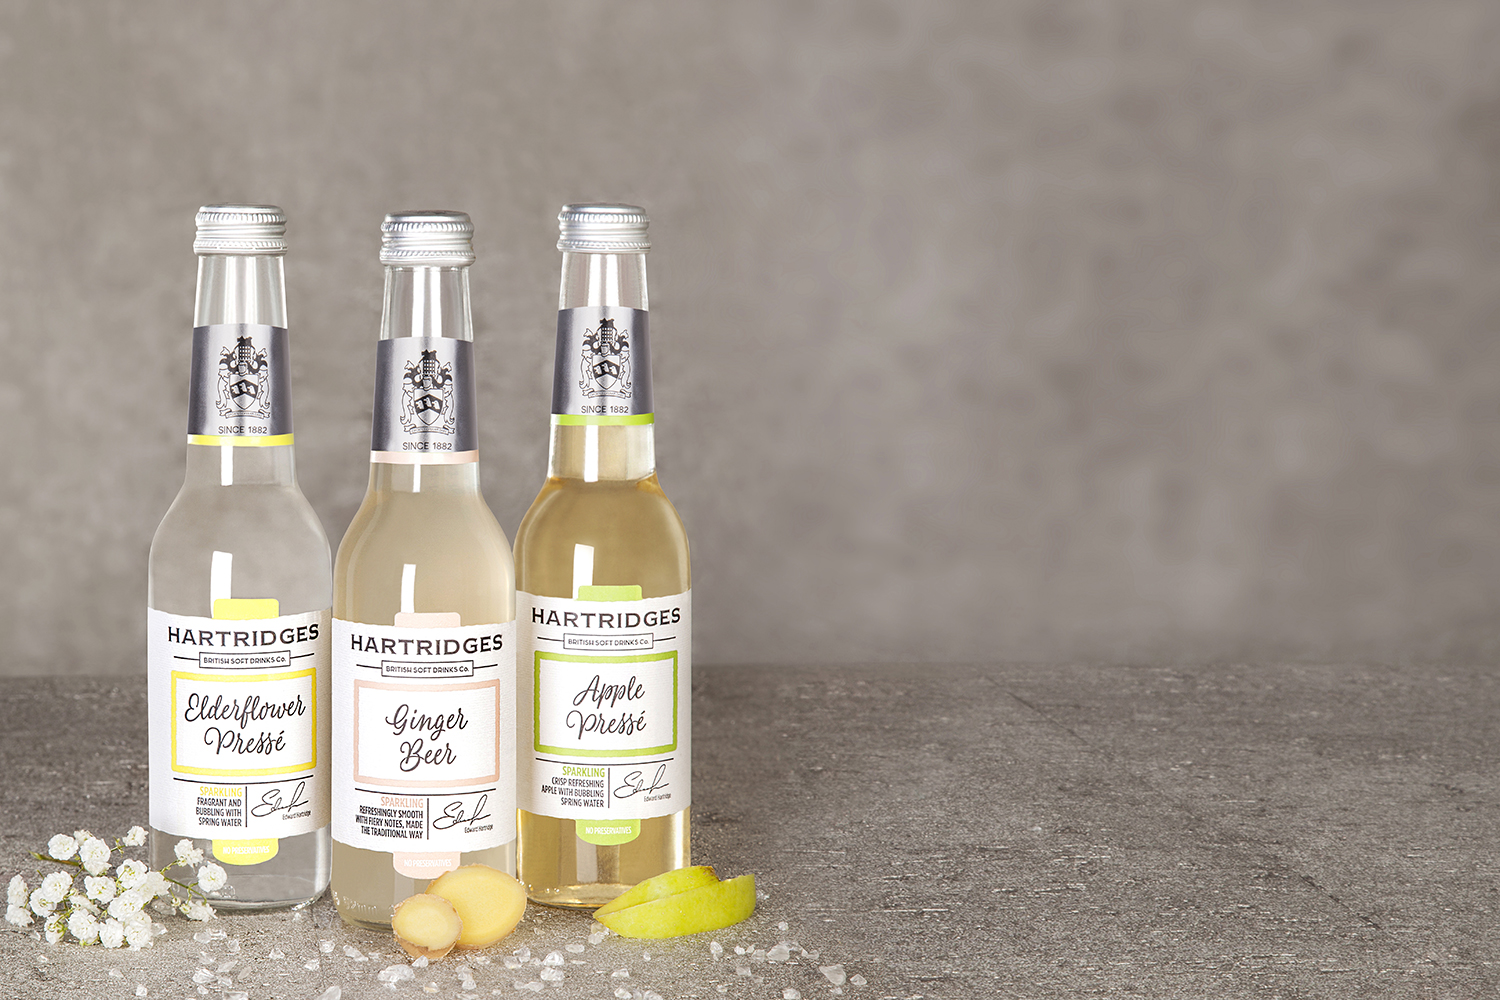 JUCIES & SPARKLING - Find out more